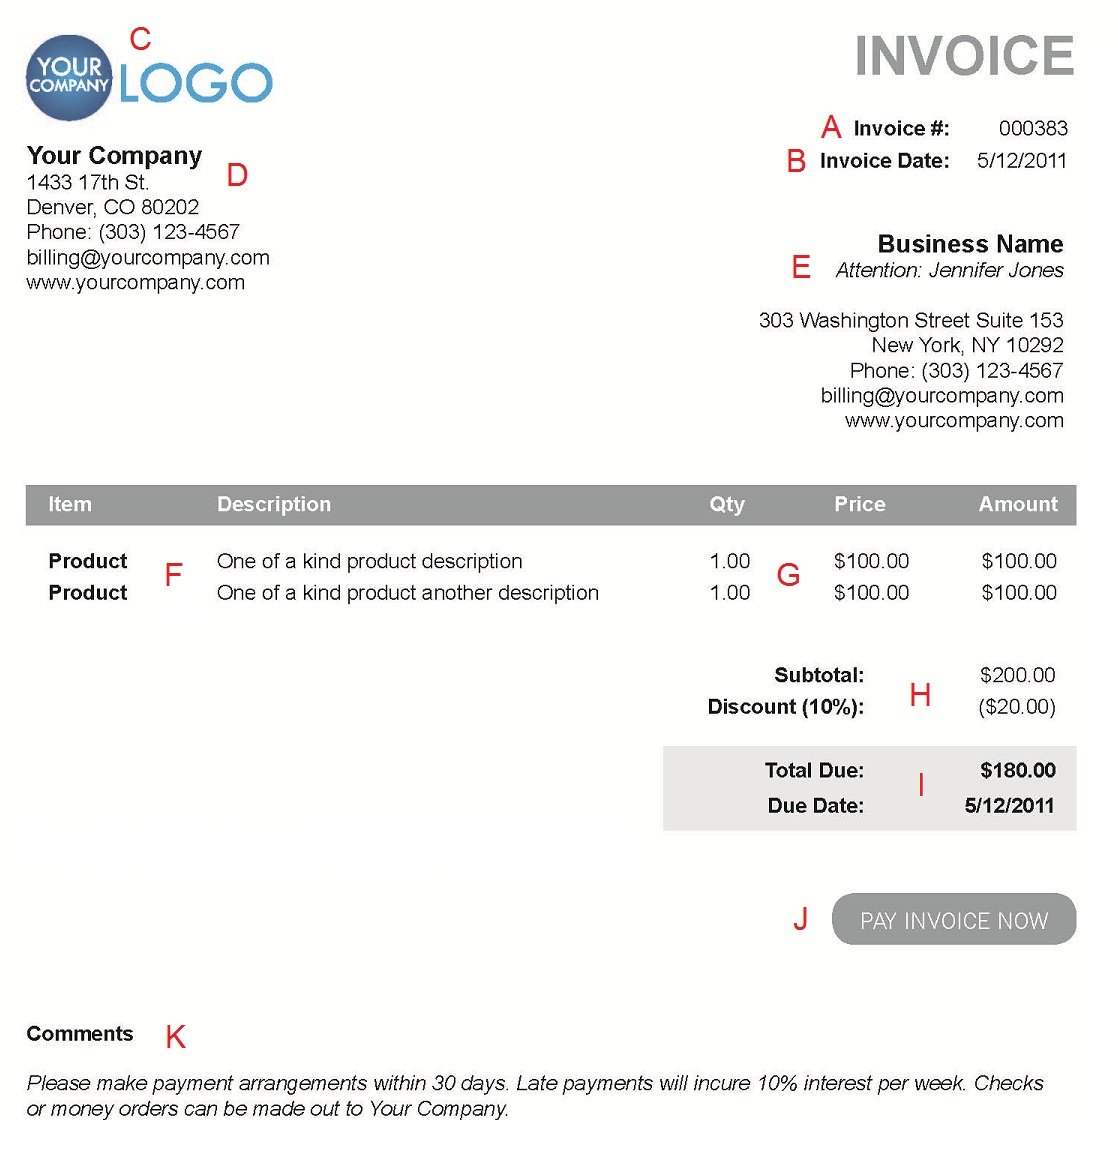 Coolmathgamesus  Wonderful The  Different Sections Of An Electronic Payment Invoice With Fetching A  With Amusing Artist Invoice Also Invoice Software For Small Business In Addition How To Pay An Invoice And Fillable Invoice Template As Well As Invoice Vs Statement Additionally Patient Invoice From Paysimplecom With Coolmathgamesus  Fetching The  Different Sections Of An Electronic Payment Invoice With Amusing A  And Wonderful Artist Invoice Also Invoice Software For Small Business In Addition How To Pay An Invoice From Paysimplecom